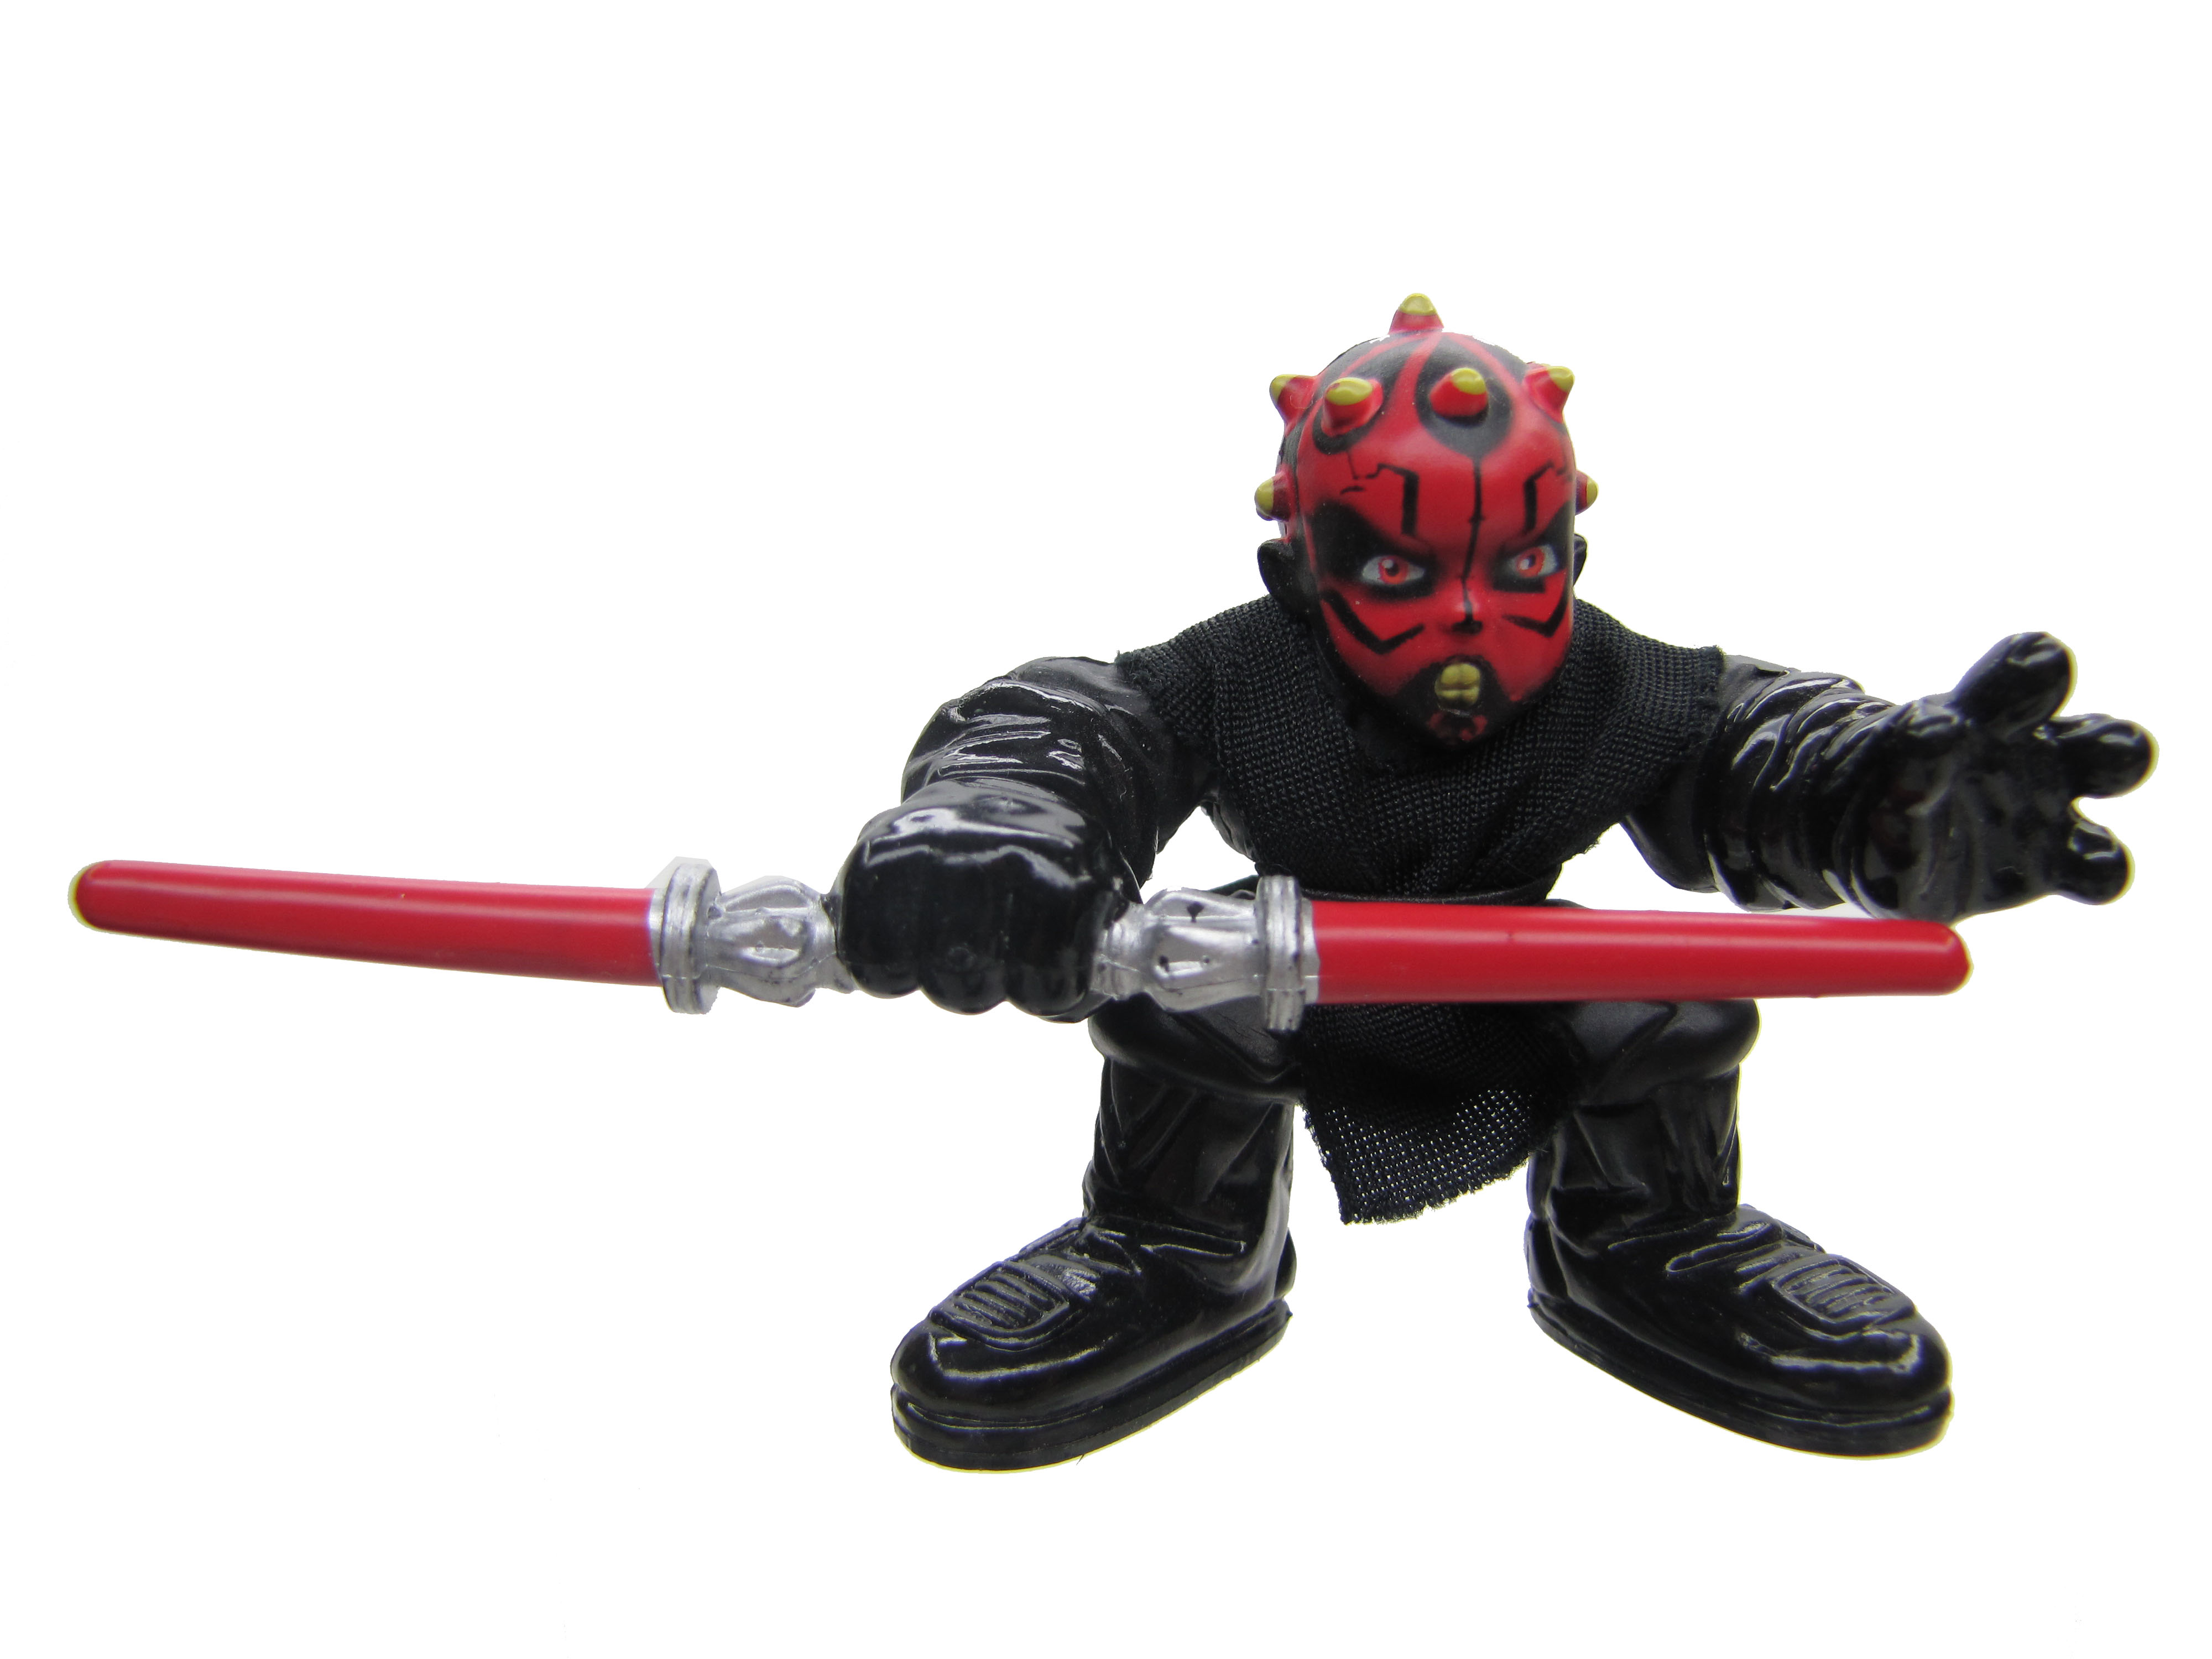 Star Wars Galactic Heroes Darth Maul Battle of Naboo Complete